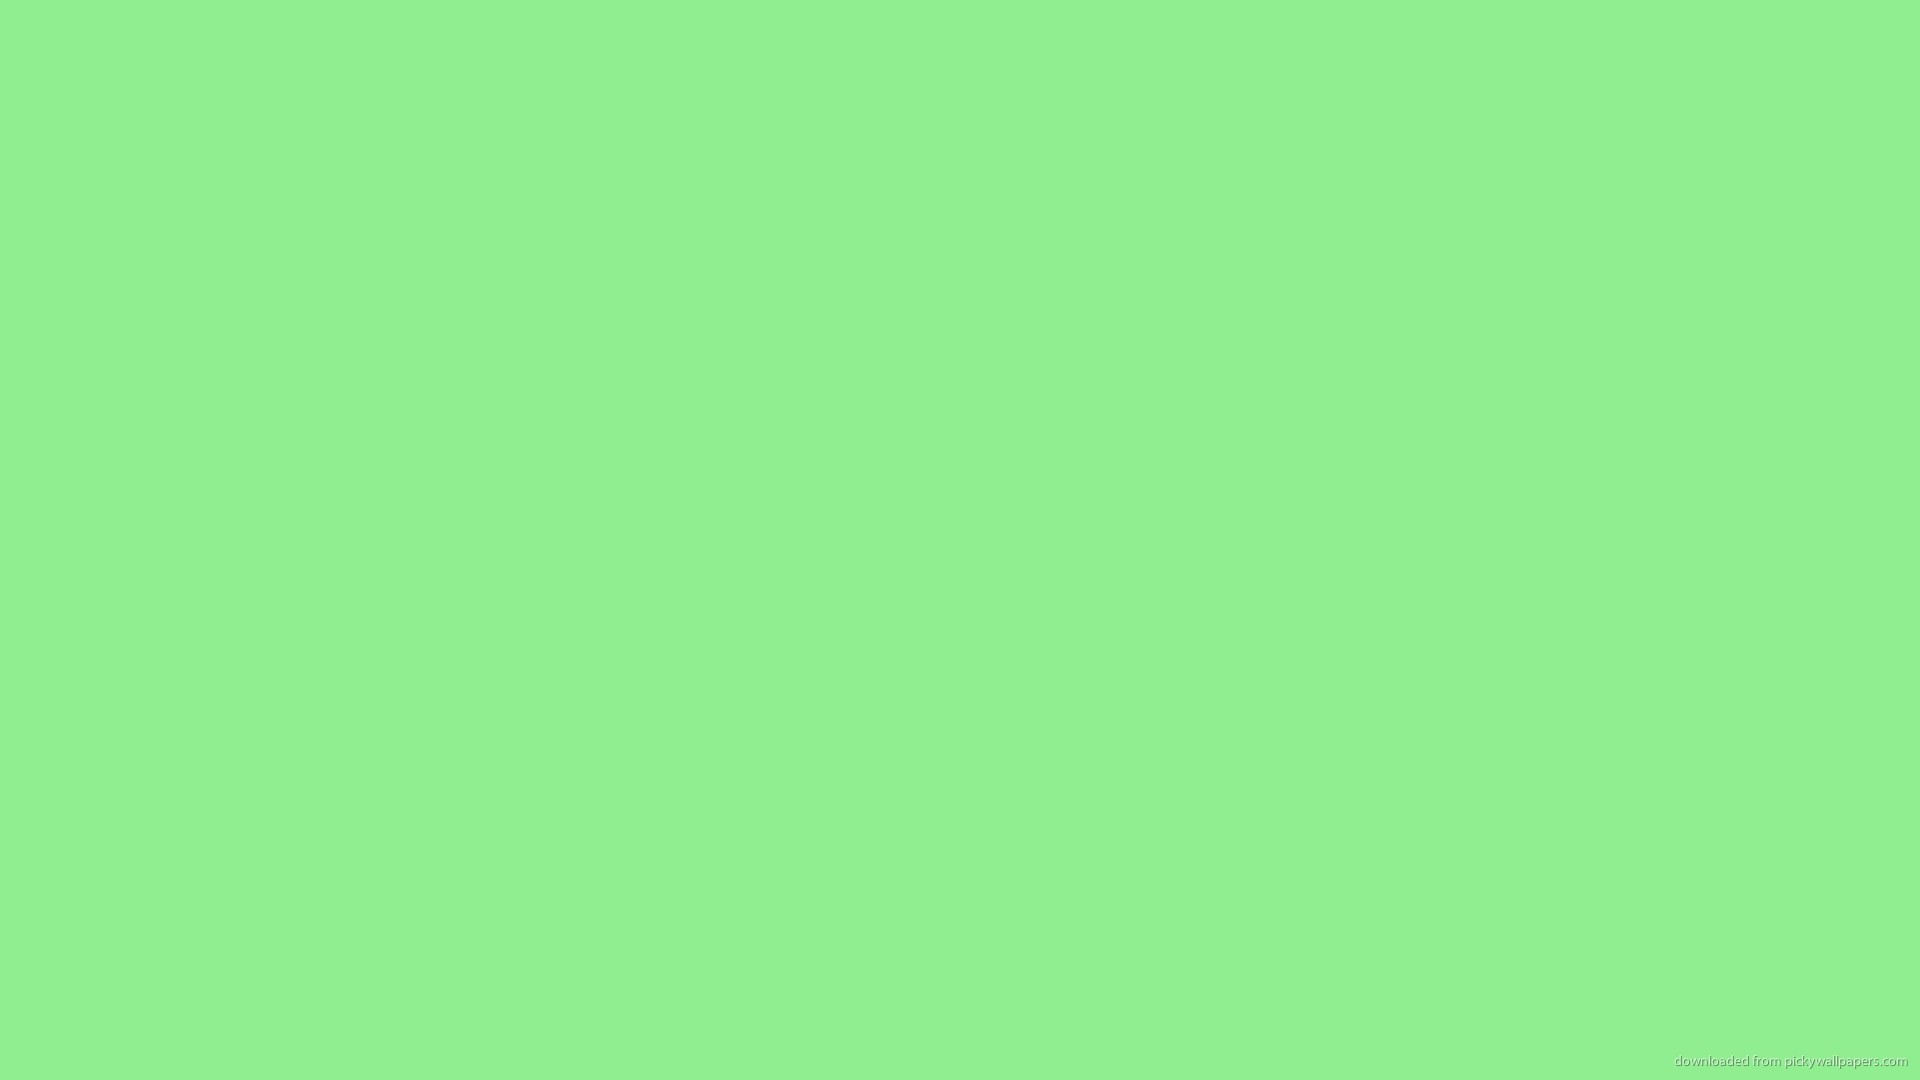 Solid Light Green Color Wallpaper Picture For iPhone, Blackberry, iPad .